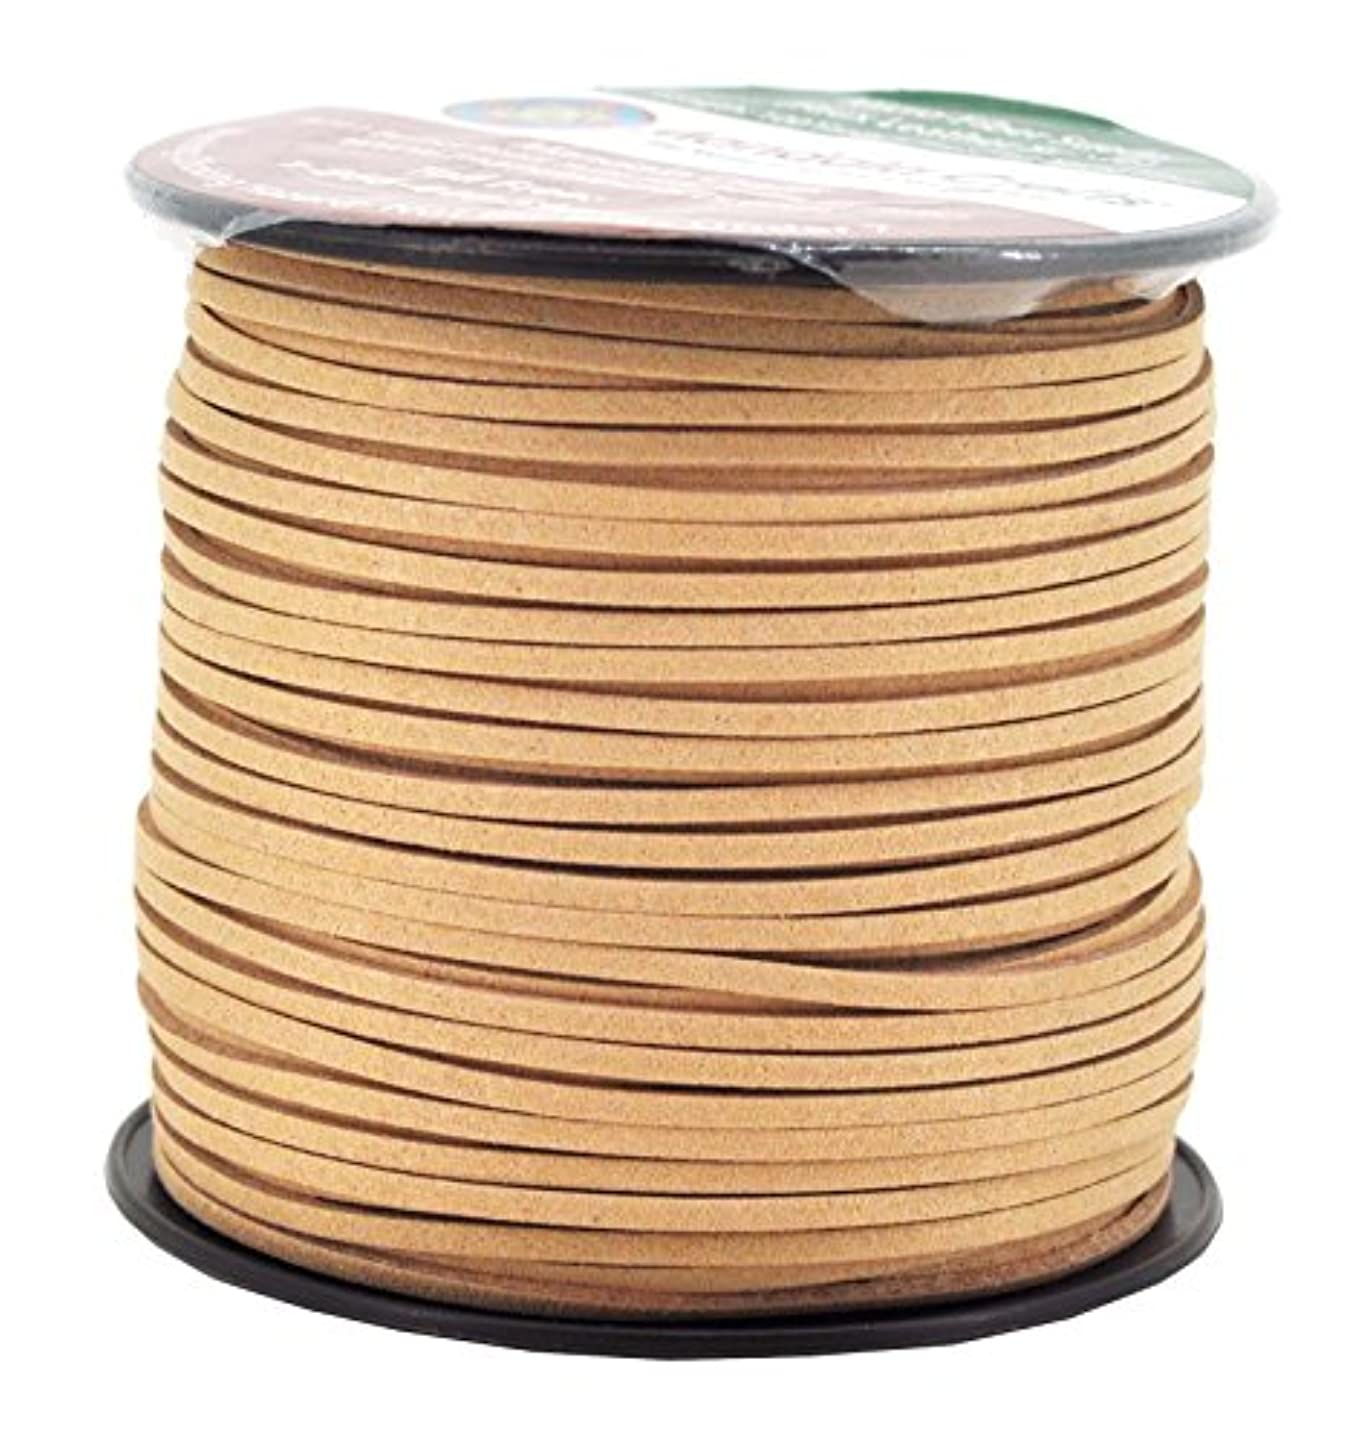 Mandala Crafts 100 Yards 2.65mm Wide Jewelry Making Flat Micro Fiber Lace Faux Suede Leather Cord (Beige)